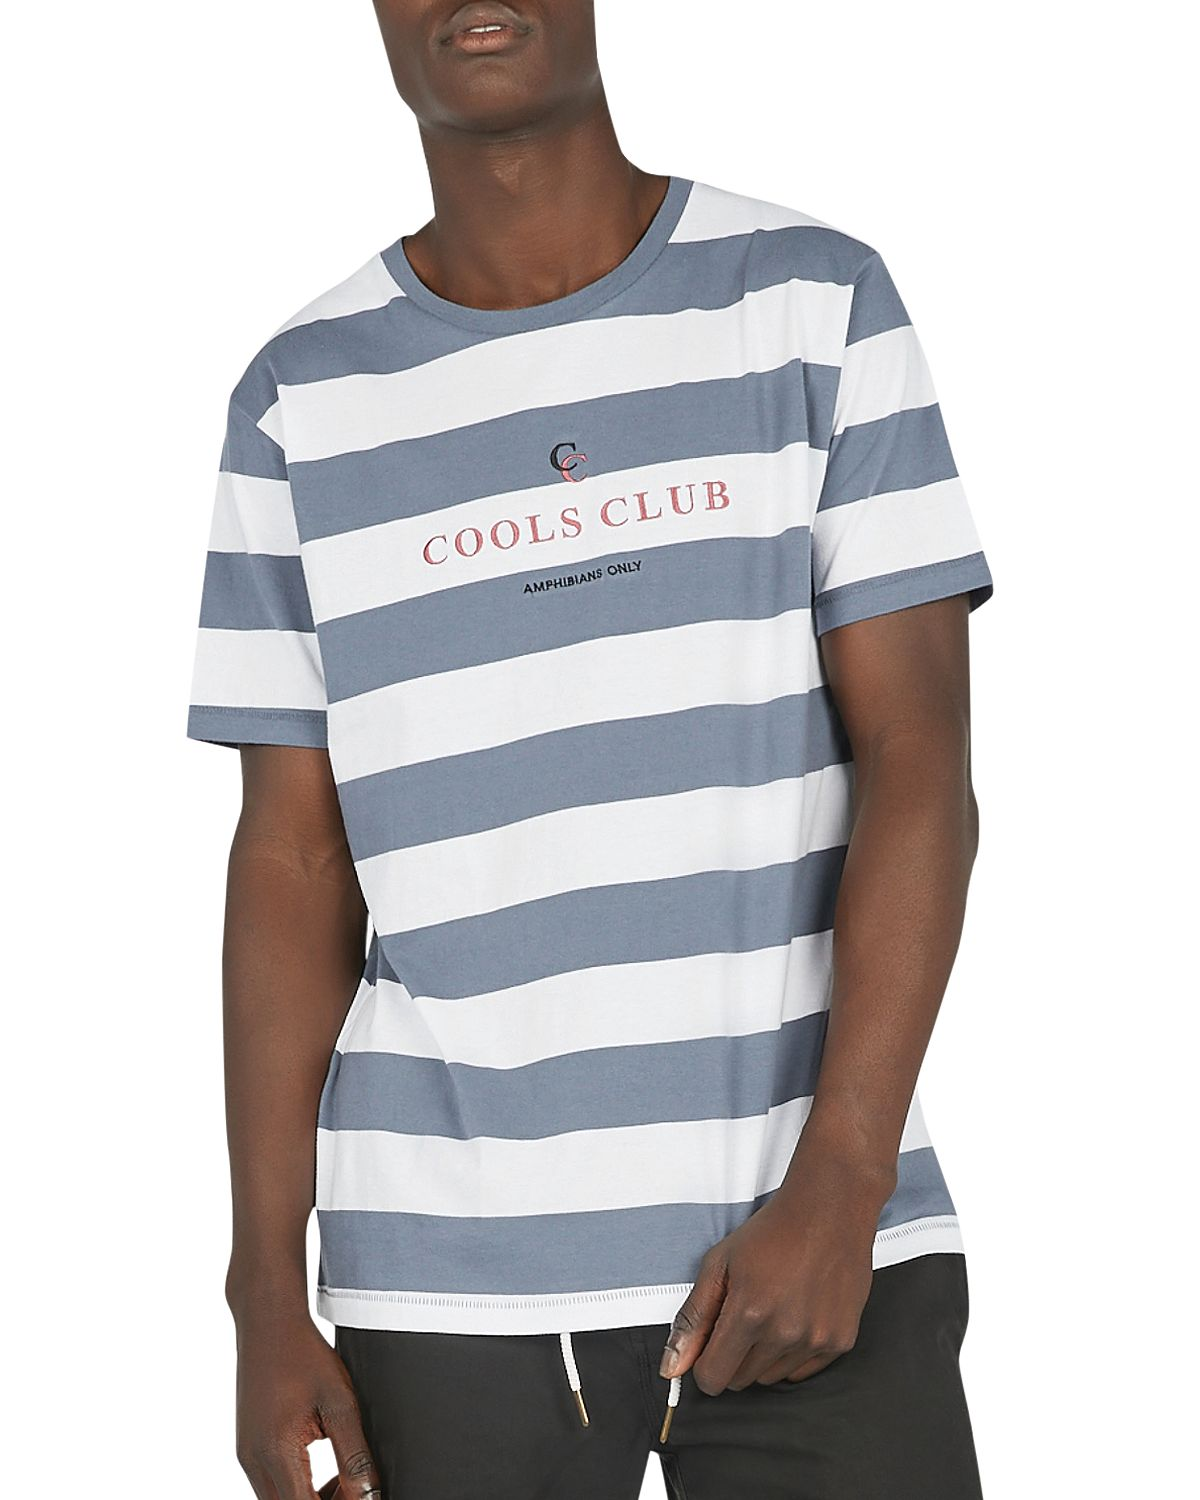 Barney Cools Club-embroidered Tee